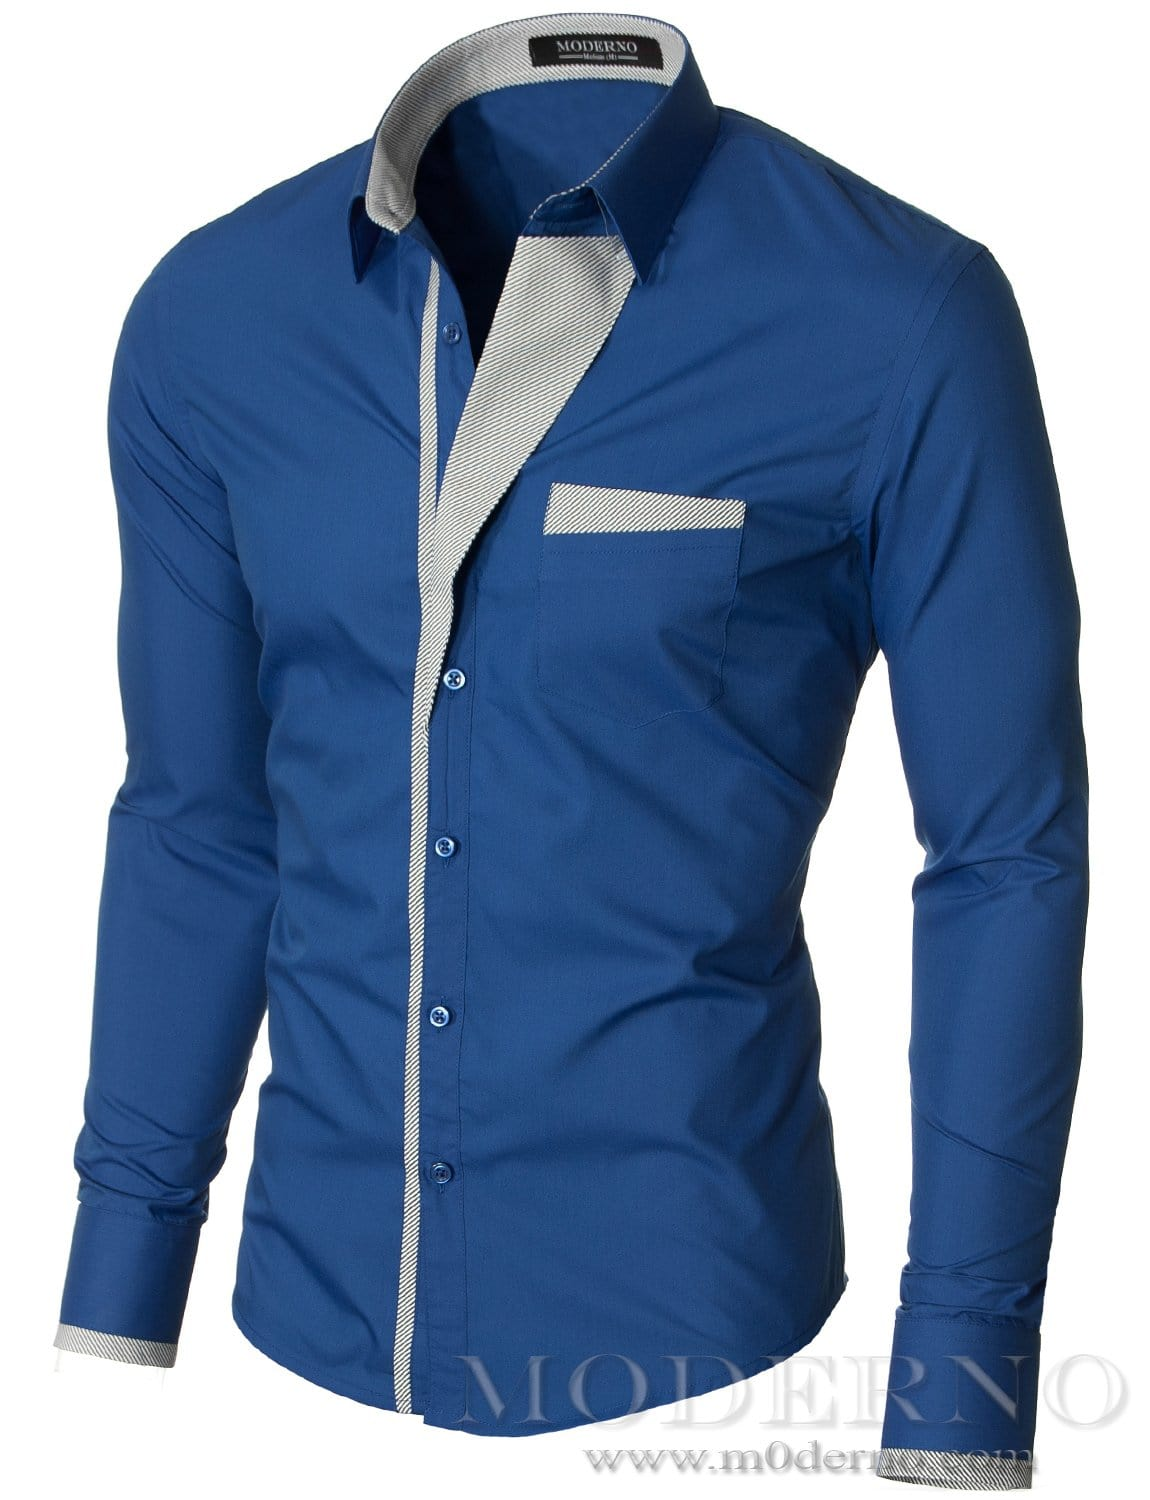 Mens slim fit button up long sleeve dress shirt blue (VGDS41LS) - MODERNO